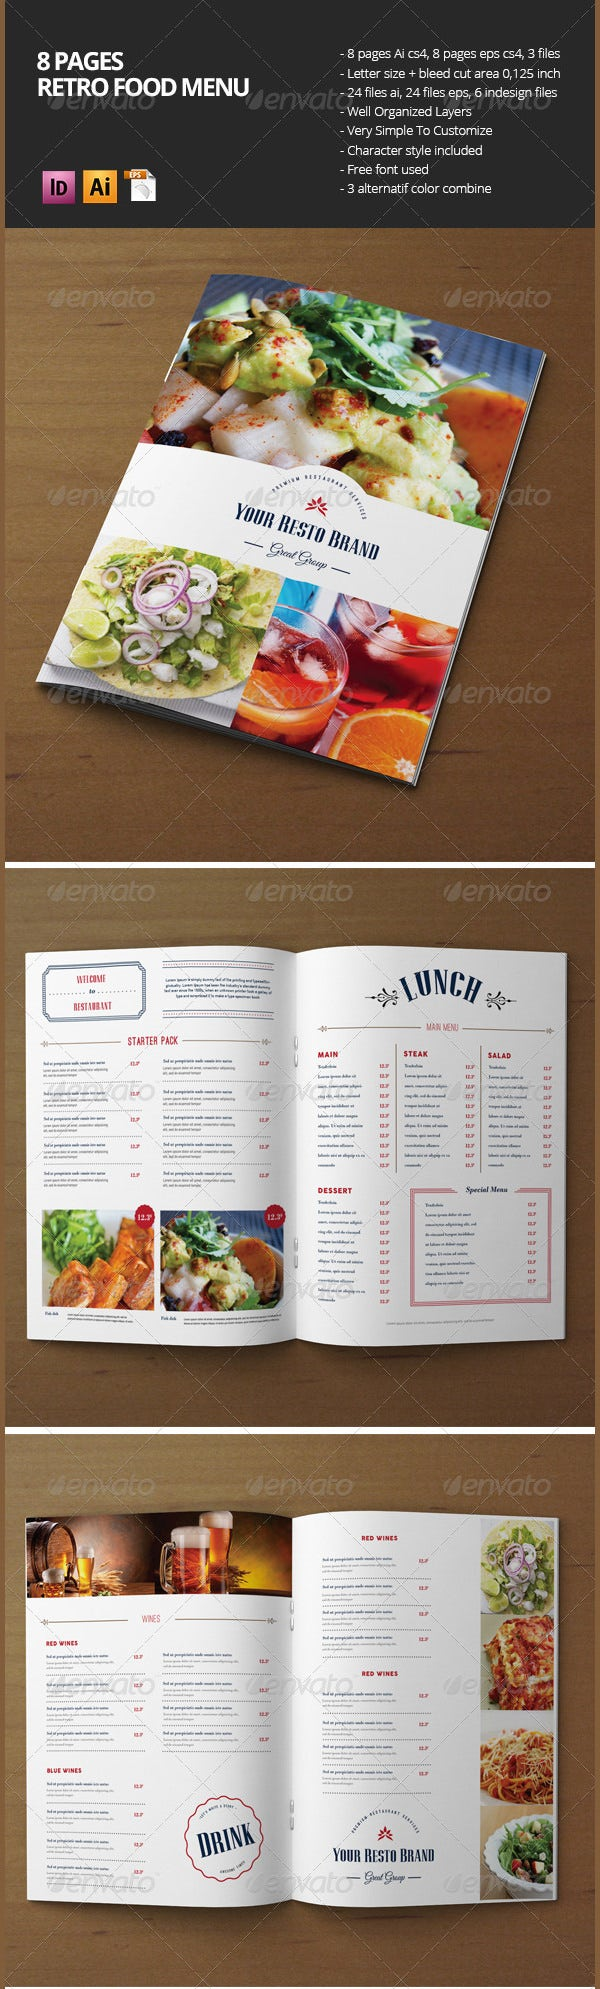 retro food menu brochure 8 pages